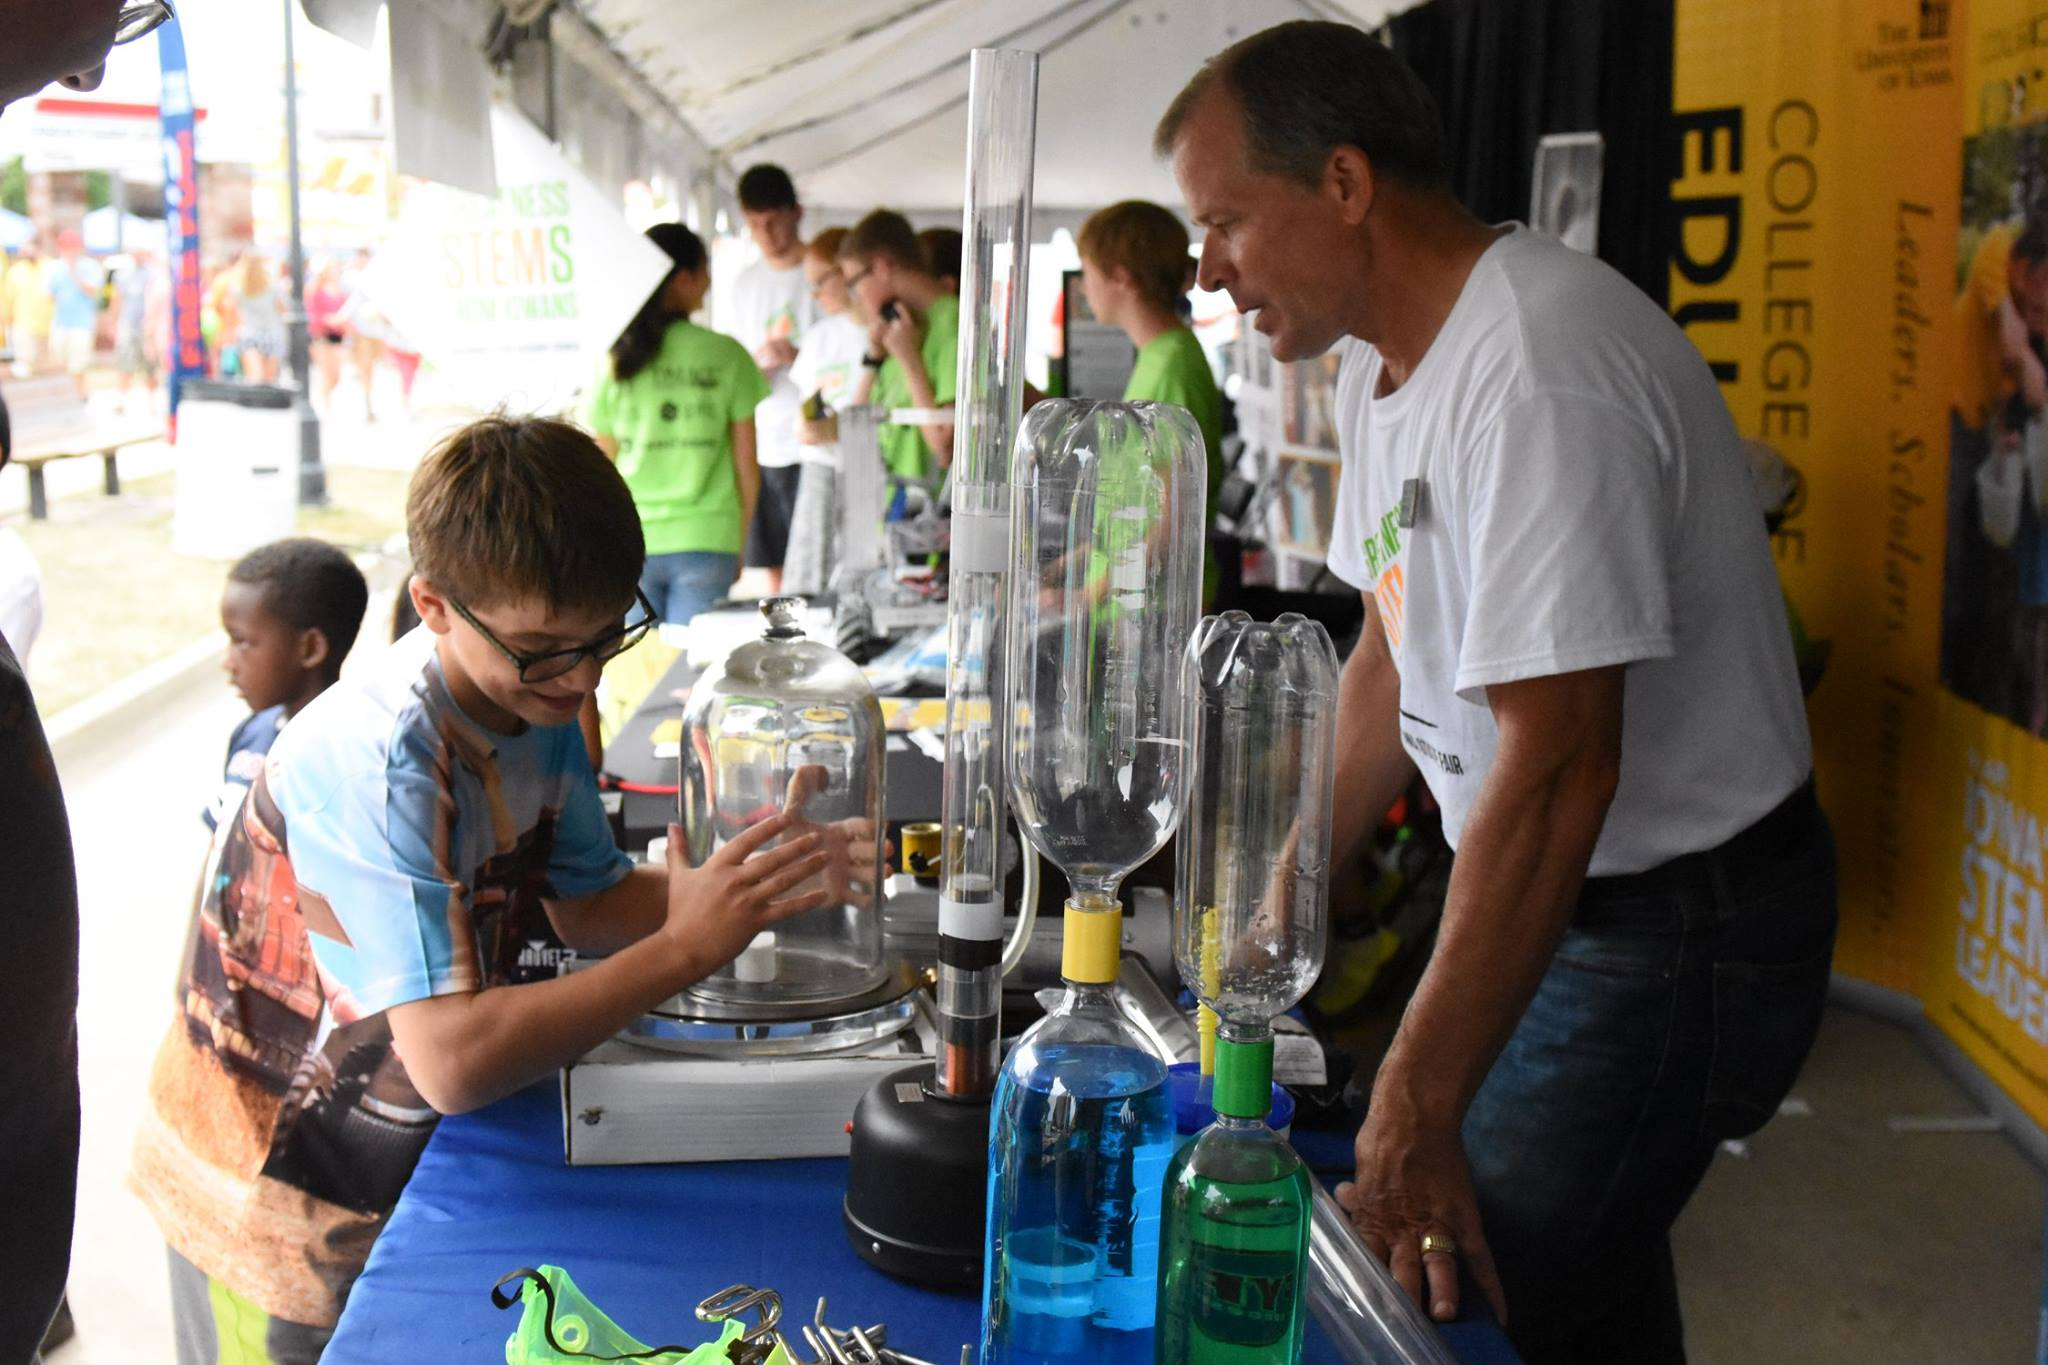 Students participate in STEM activities at the Iowa State Fair